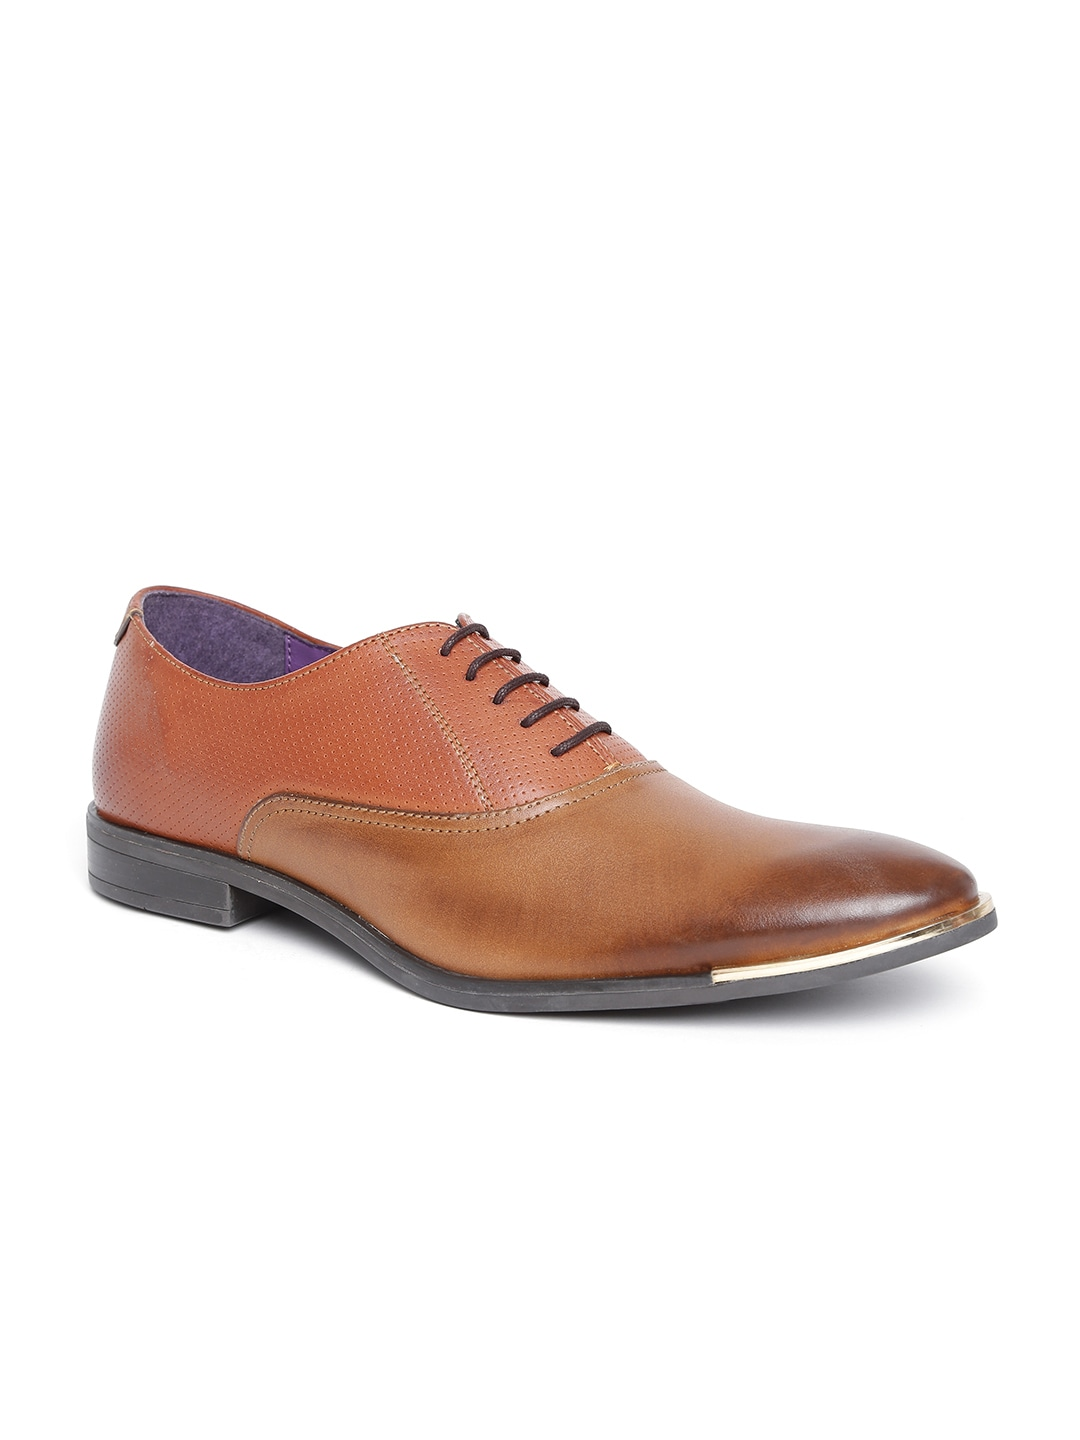 Knotty Derby by Arden Men Tan Brown Formal Shoes image